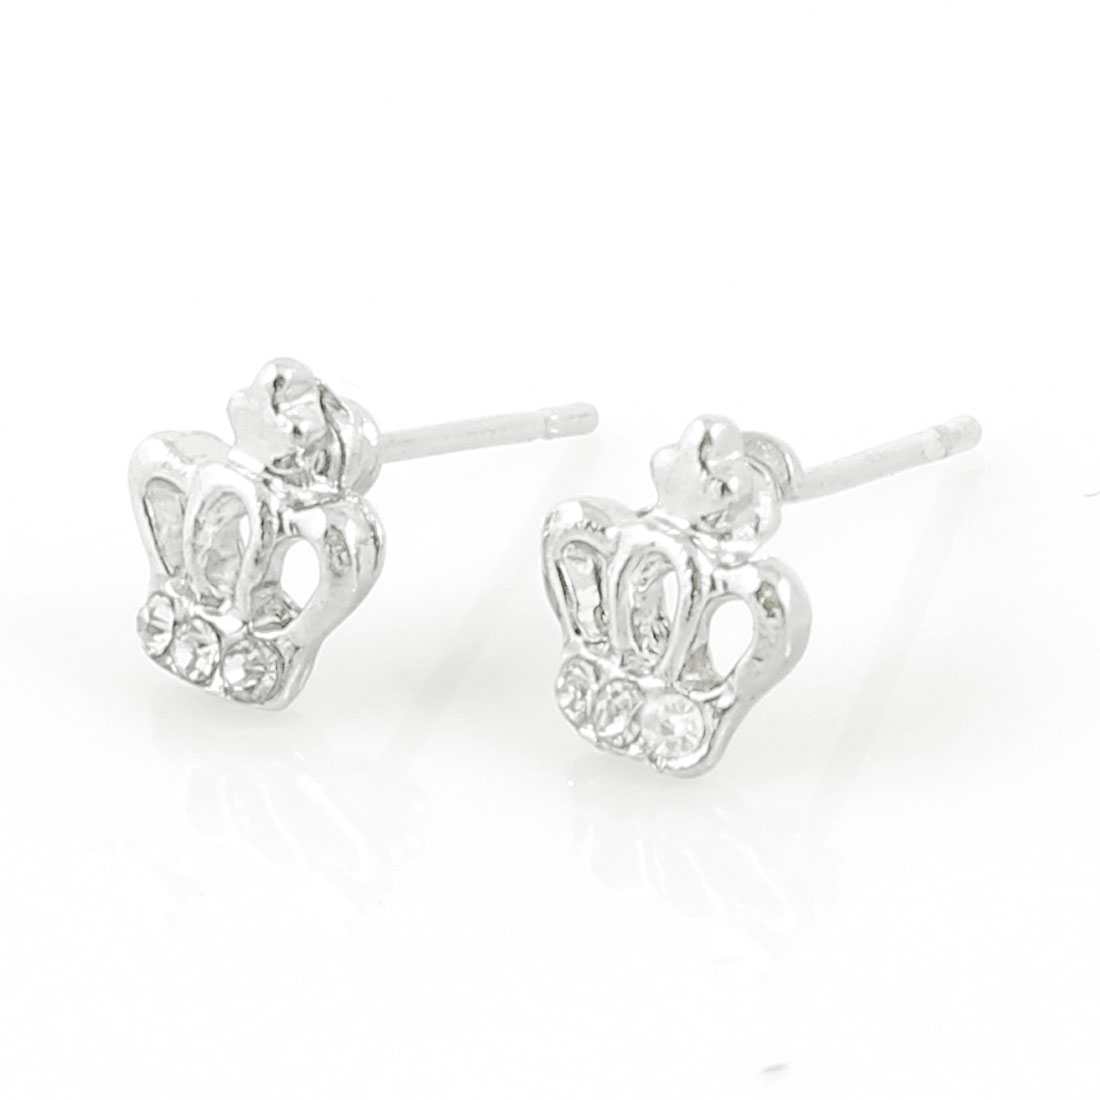 Lady Ear Decor Bling Mini Rhinestone Accent Crown Design Stud Earrings Pair